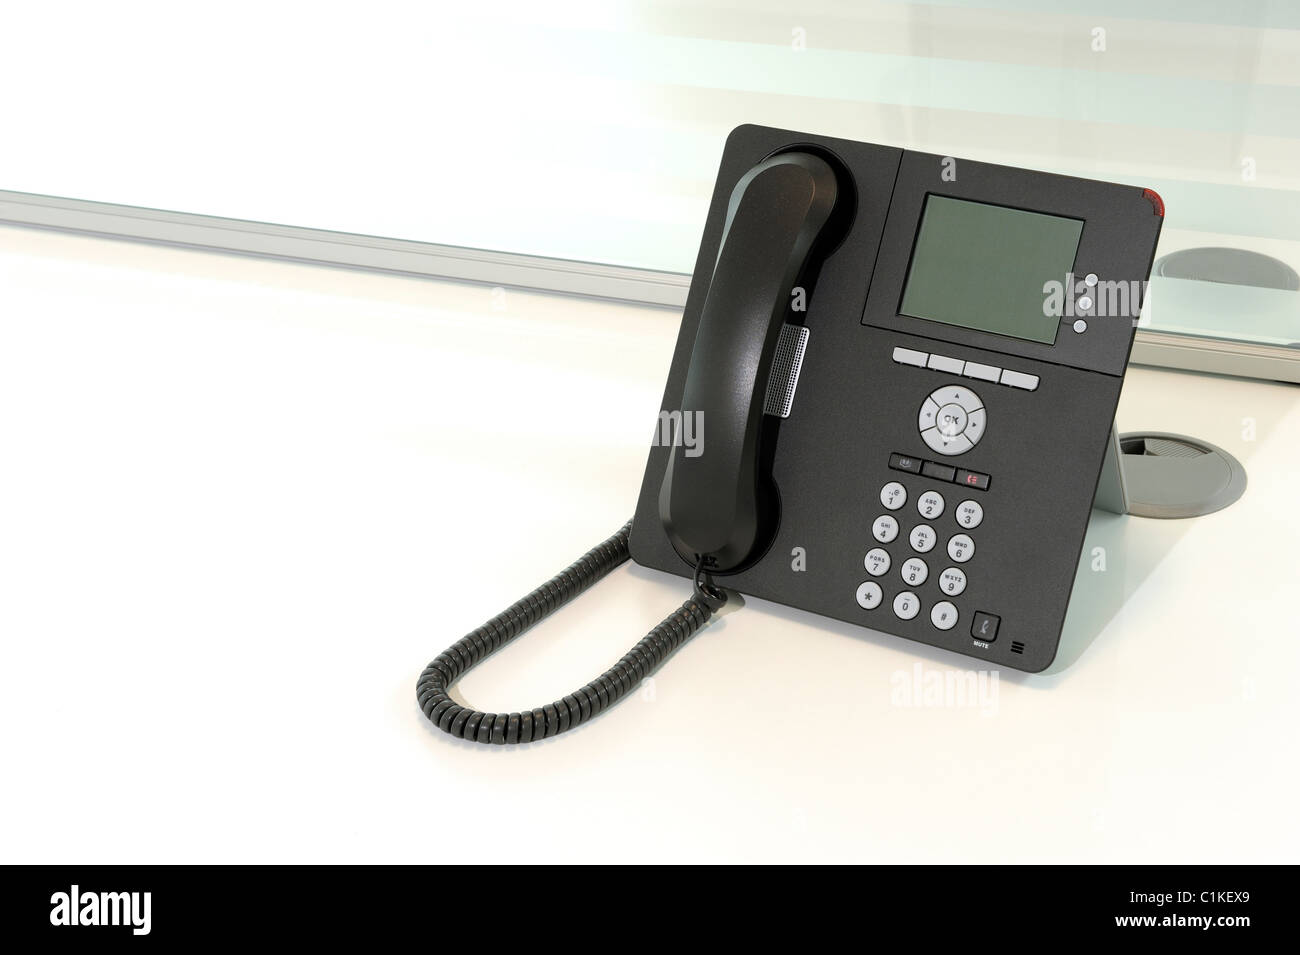 Office phone on a desk - Stock Image